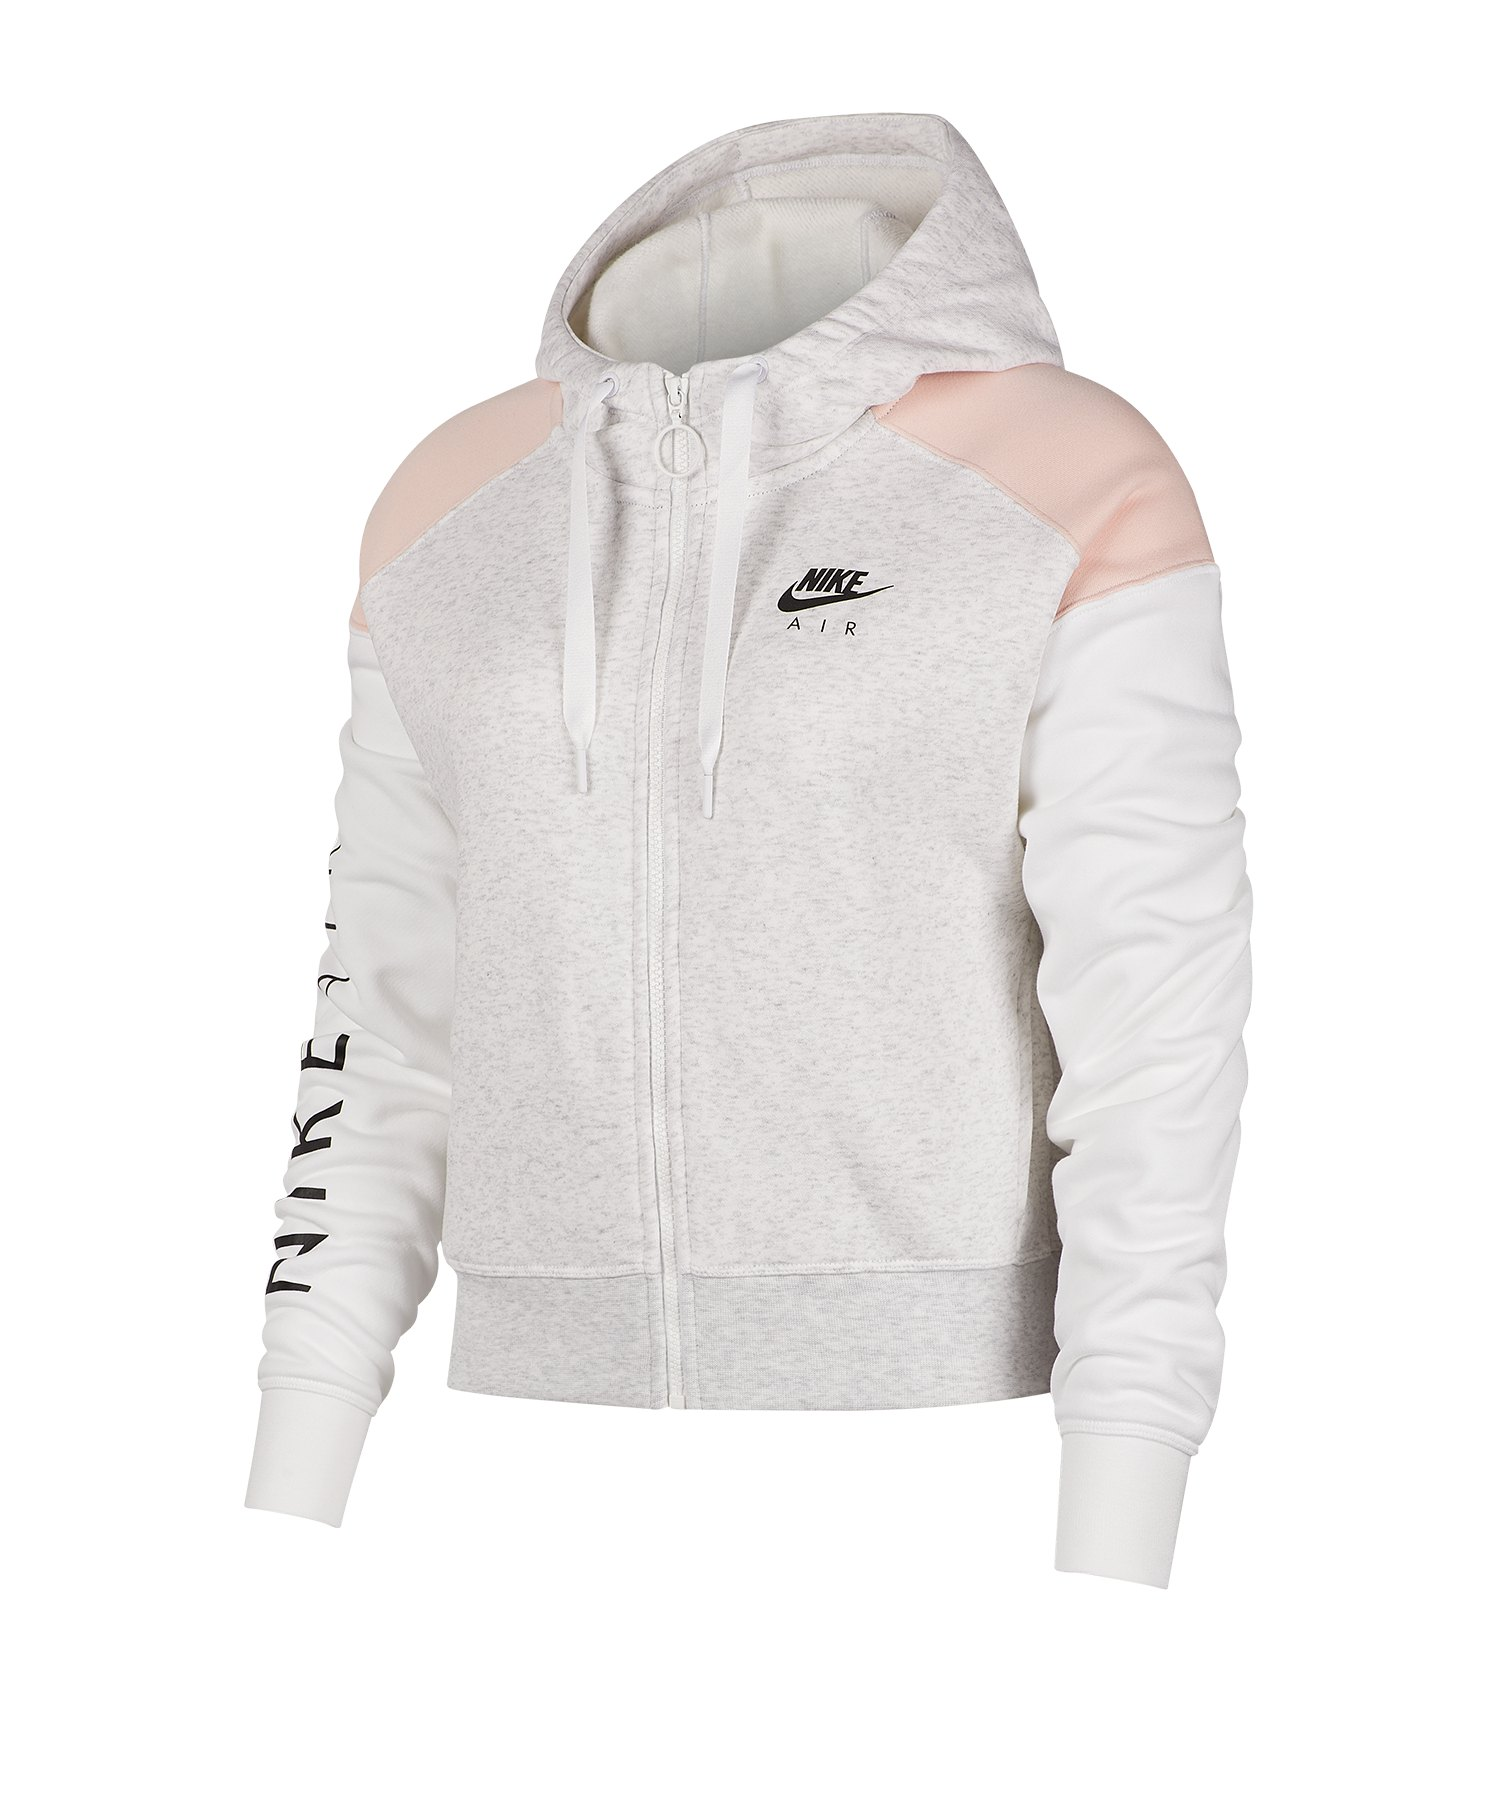 cheap for discount 7d88b c14f1 Nike Air Hoody Full-Zip Kapuzenpullover Damen F051